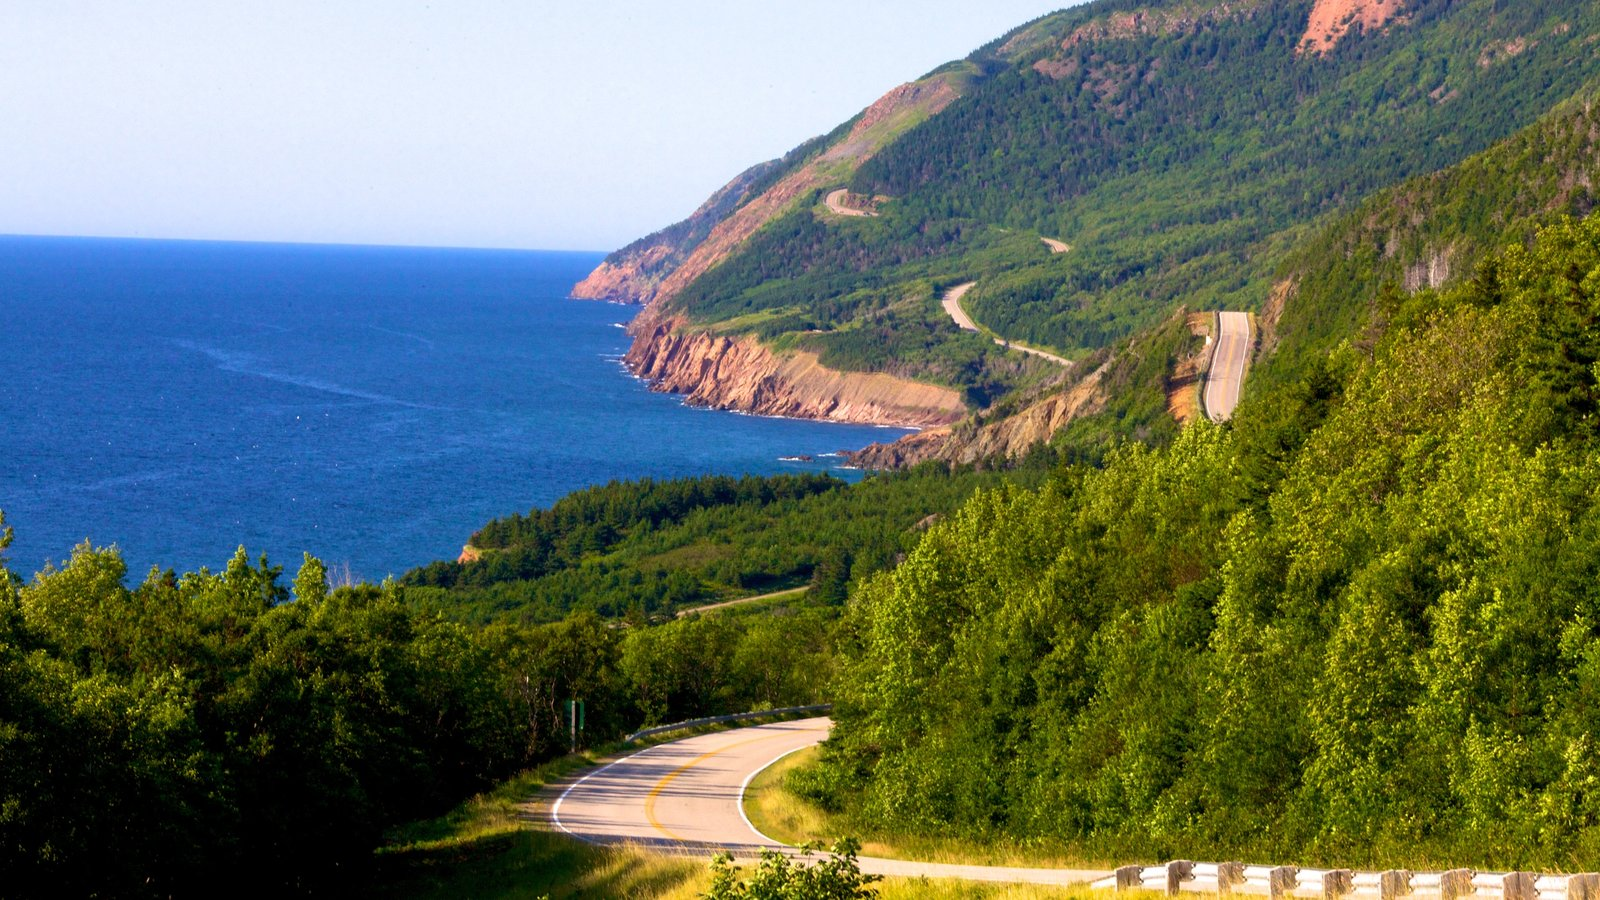 Cape Breton Highlands National Park mostrando costa rocosa